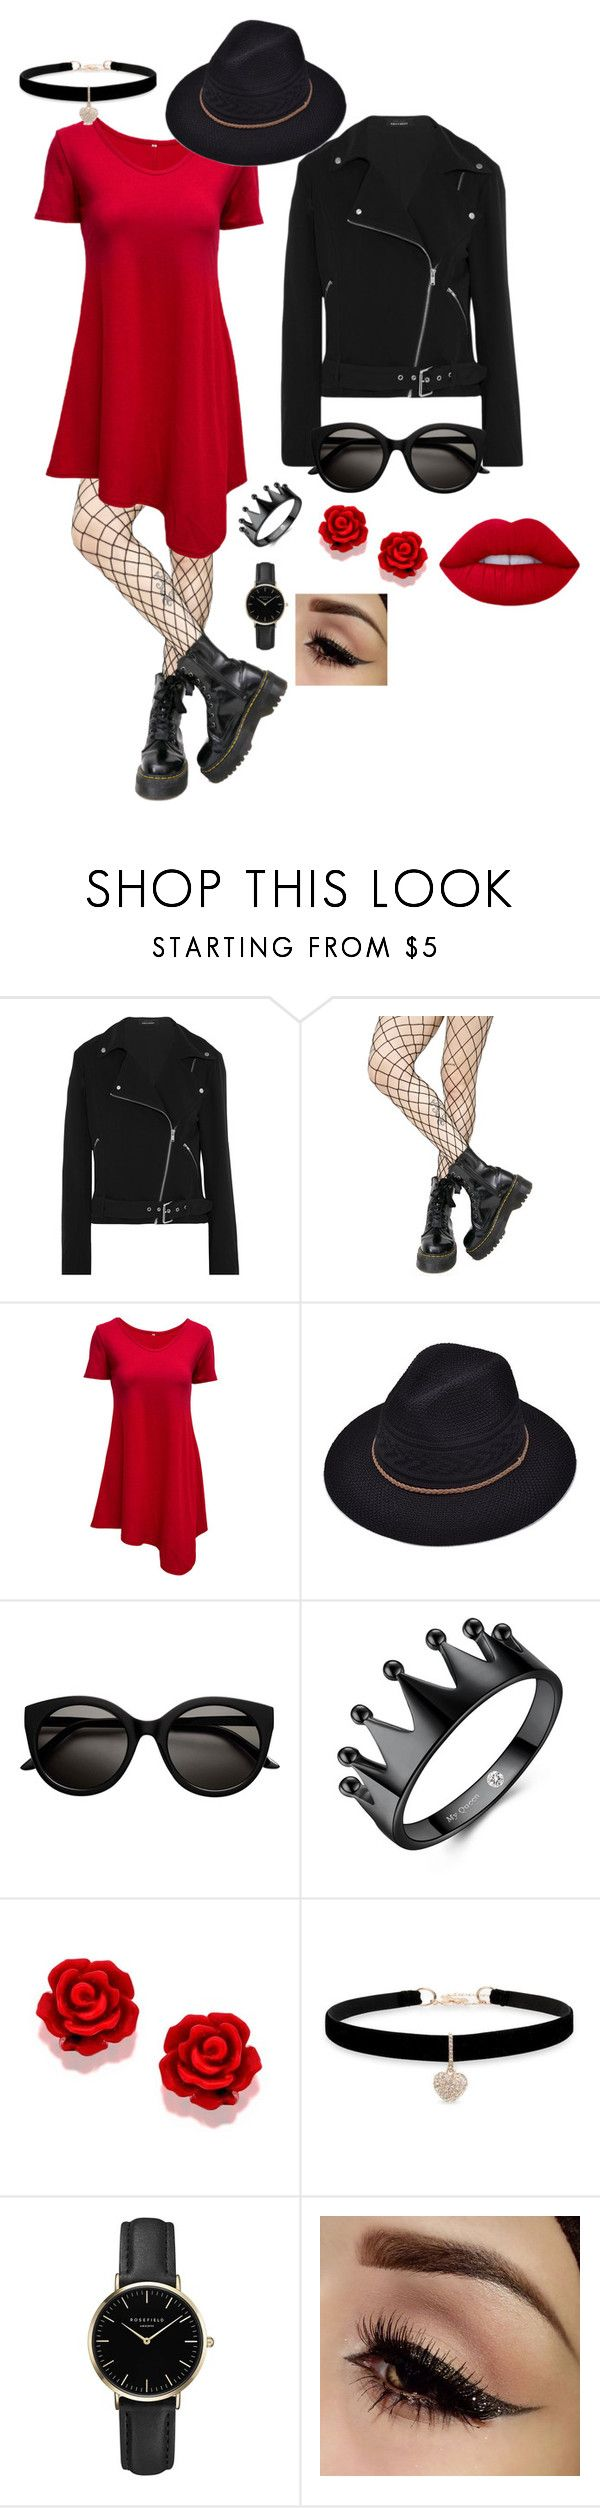 """""""hjsbvdjfb"""" by darlinglove05 ❤ liked on Polyvore featuring Equipment, Leg Avenue, WithChic, Betsey Johnson and ROSEFIELD"""